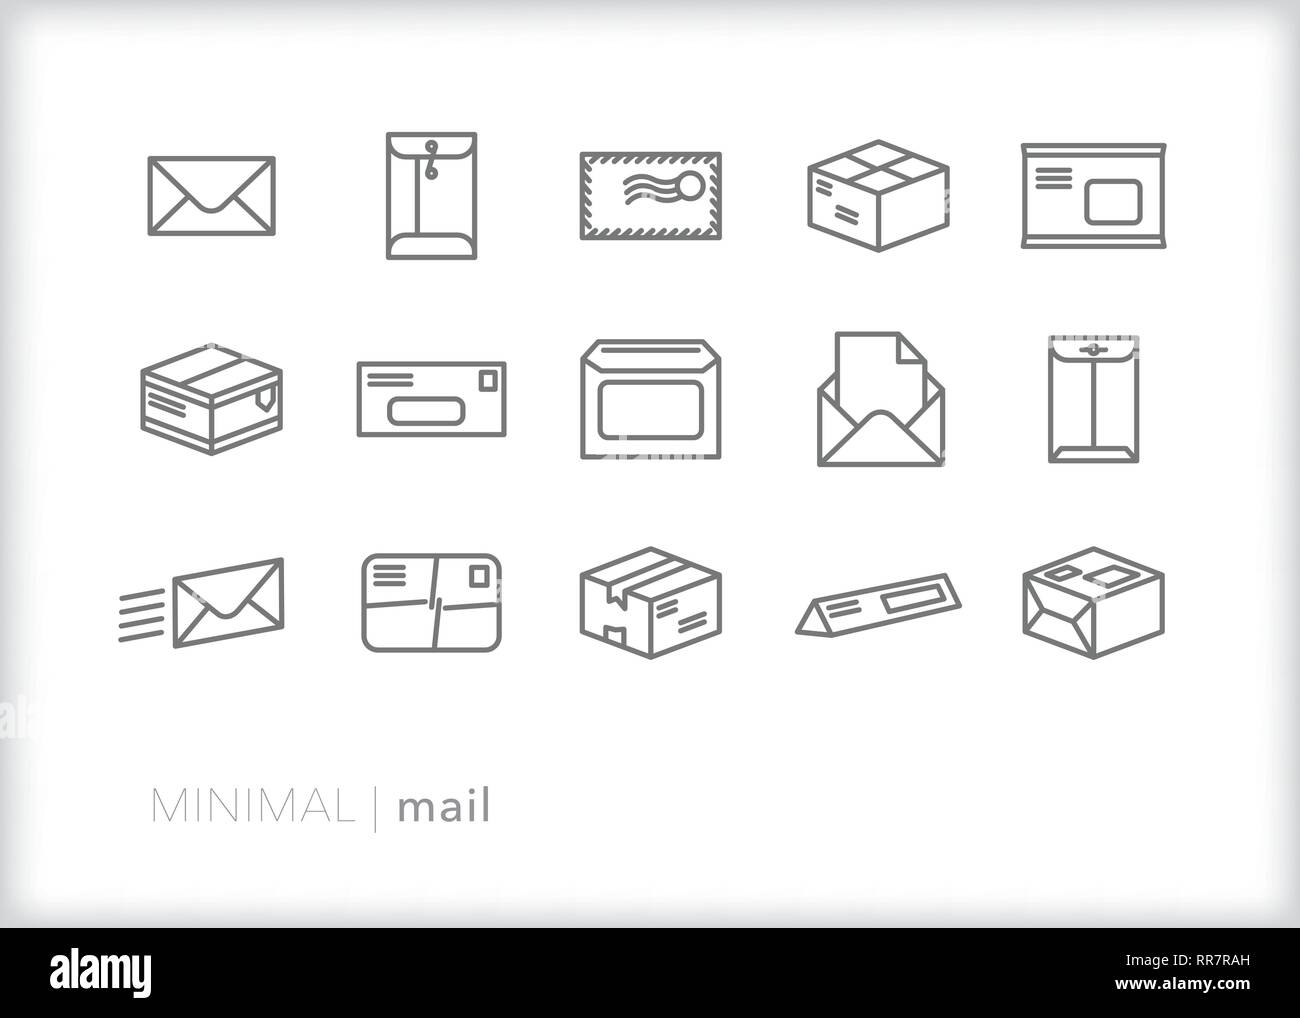 Set of 15 mail line icons of postal communication and email including envelopes, packages, boxes and postcards - Stock Vector